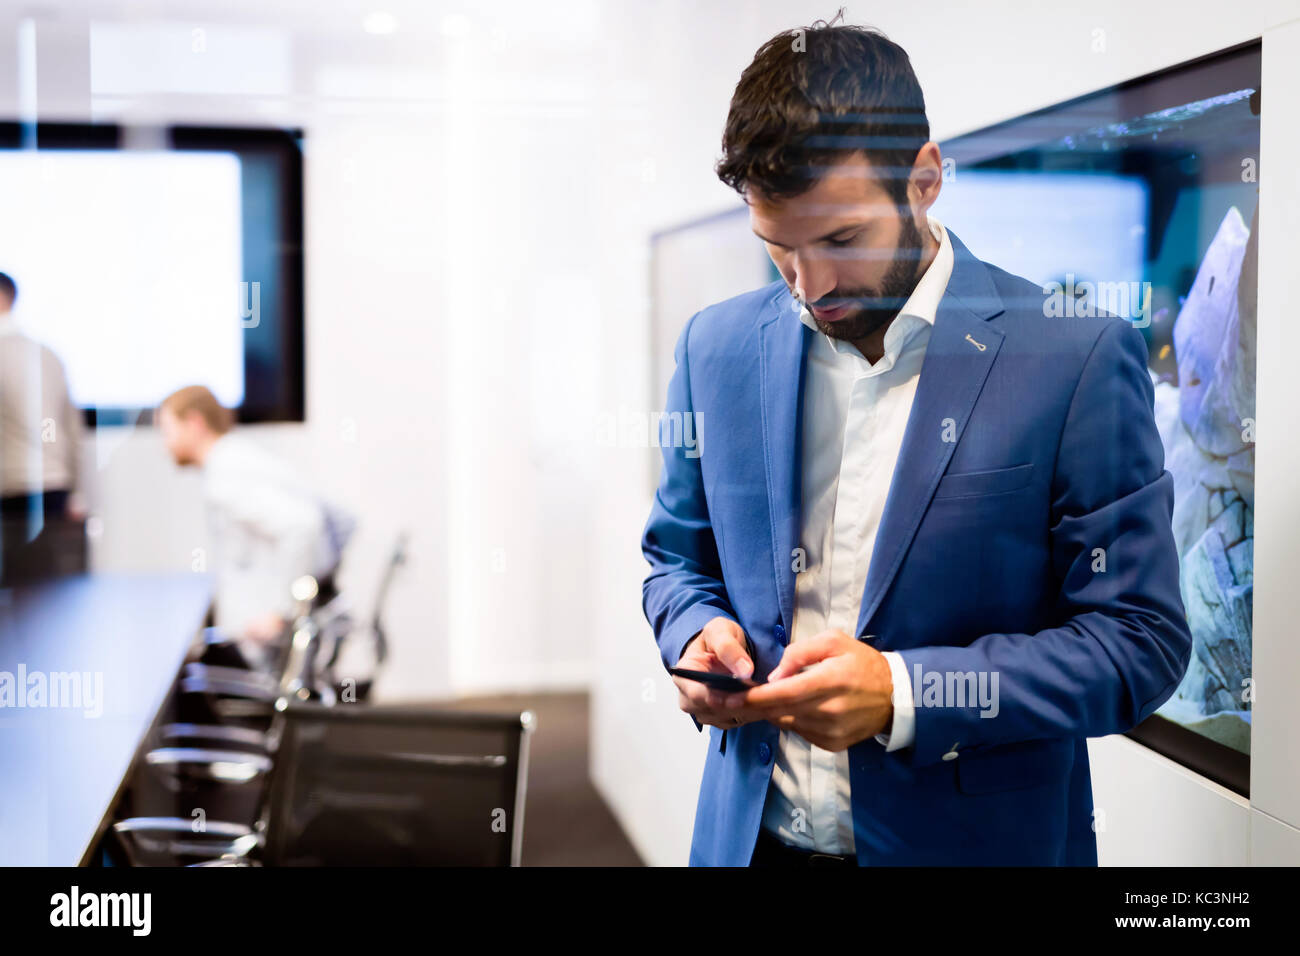 Portrait of young businessman using mobile phone Photo Stock